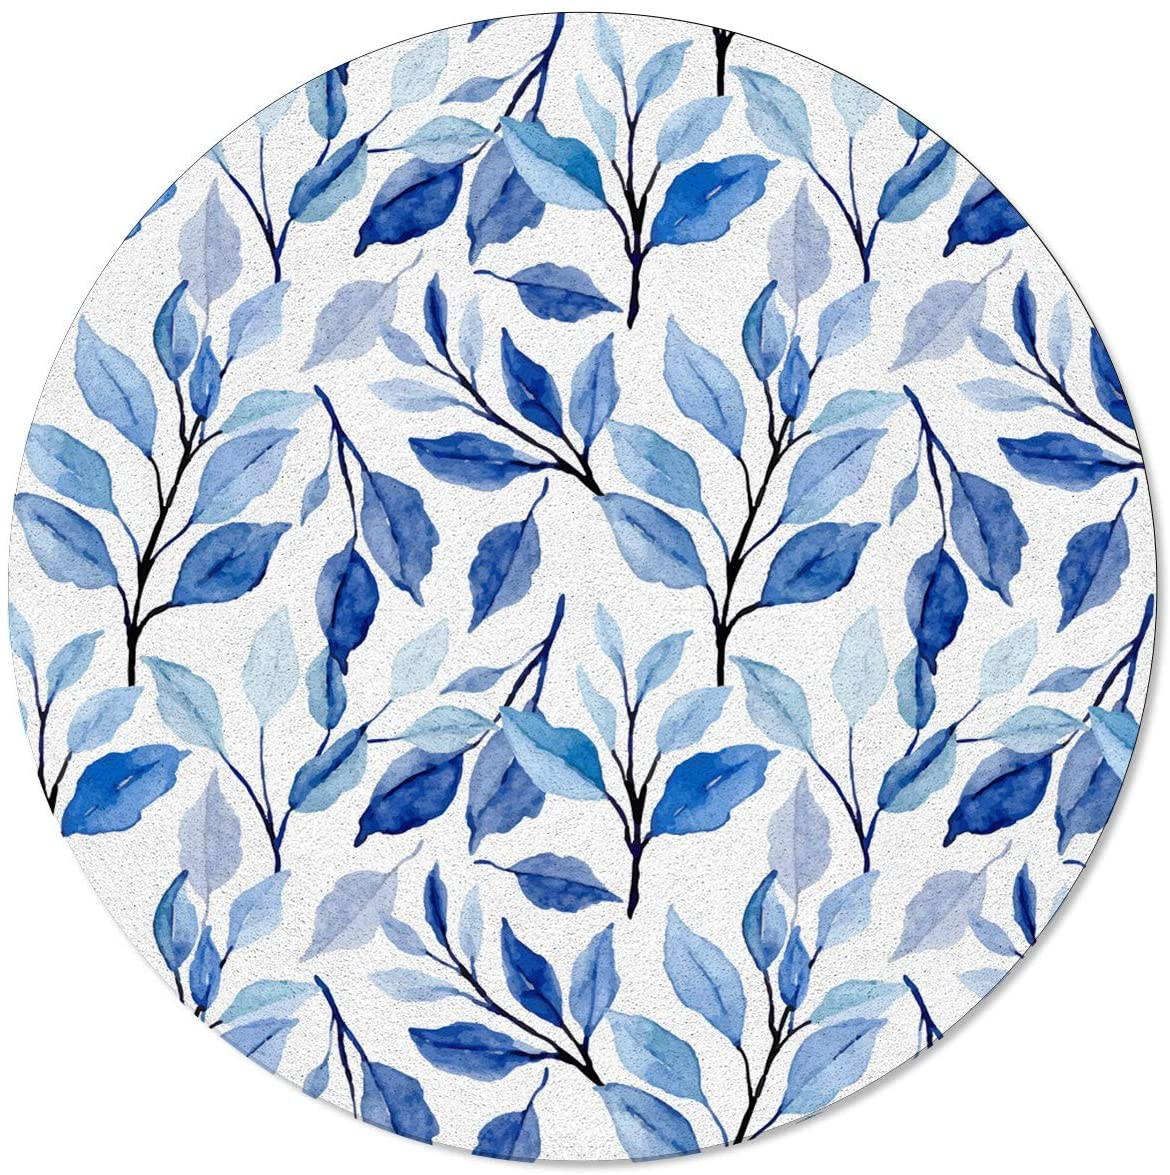 SunShine Day Modern Round Area Mats, Ethnic Style Indigo Blue Tree Leaves Large Rugs for Nursery Kids, Floor Mats for Any Entrance Or Exit 6 Feet